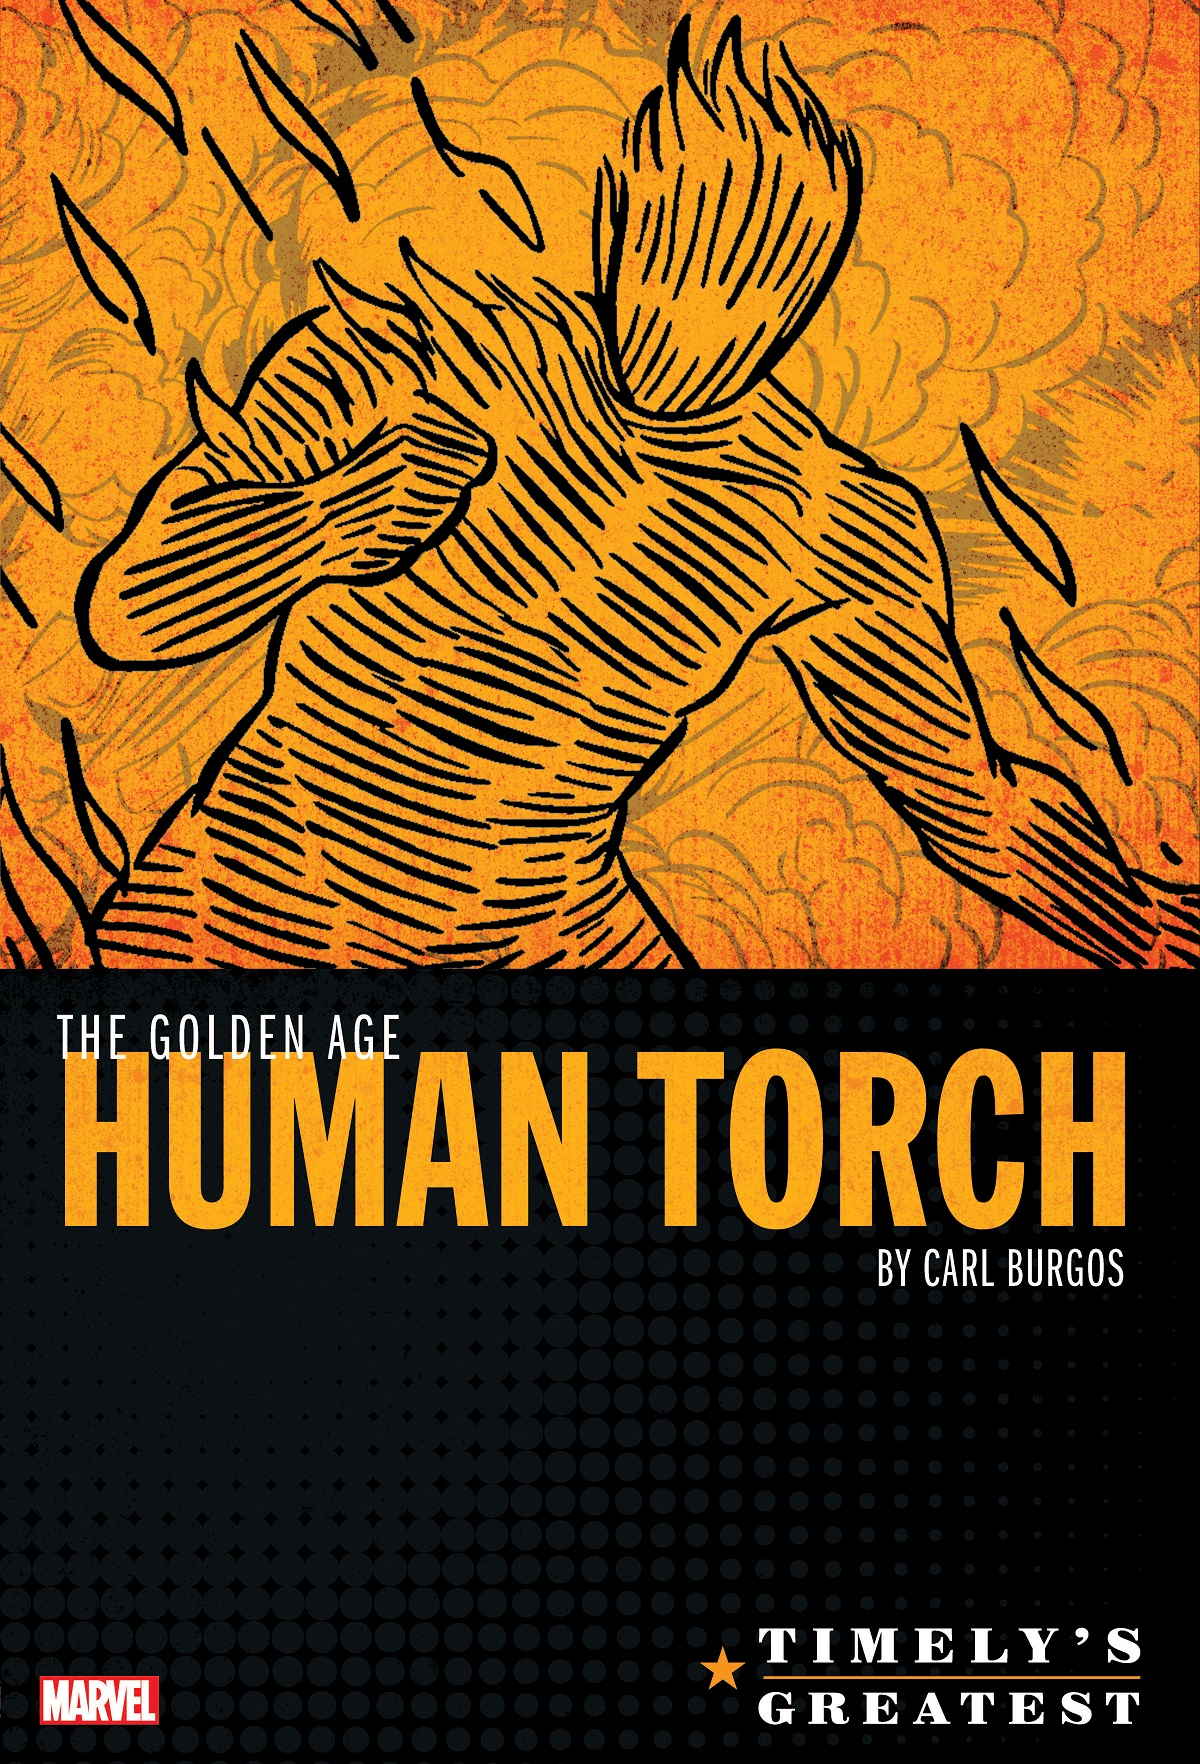 Timely's Greatest: The Golden Age Human Torch By Carl Burgos Omnibus (Hardcover)